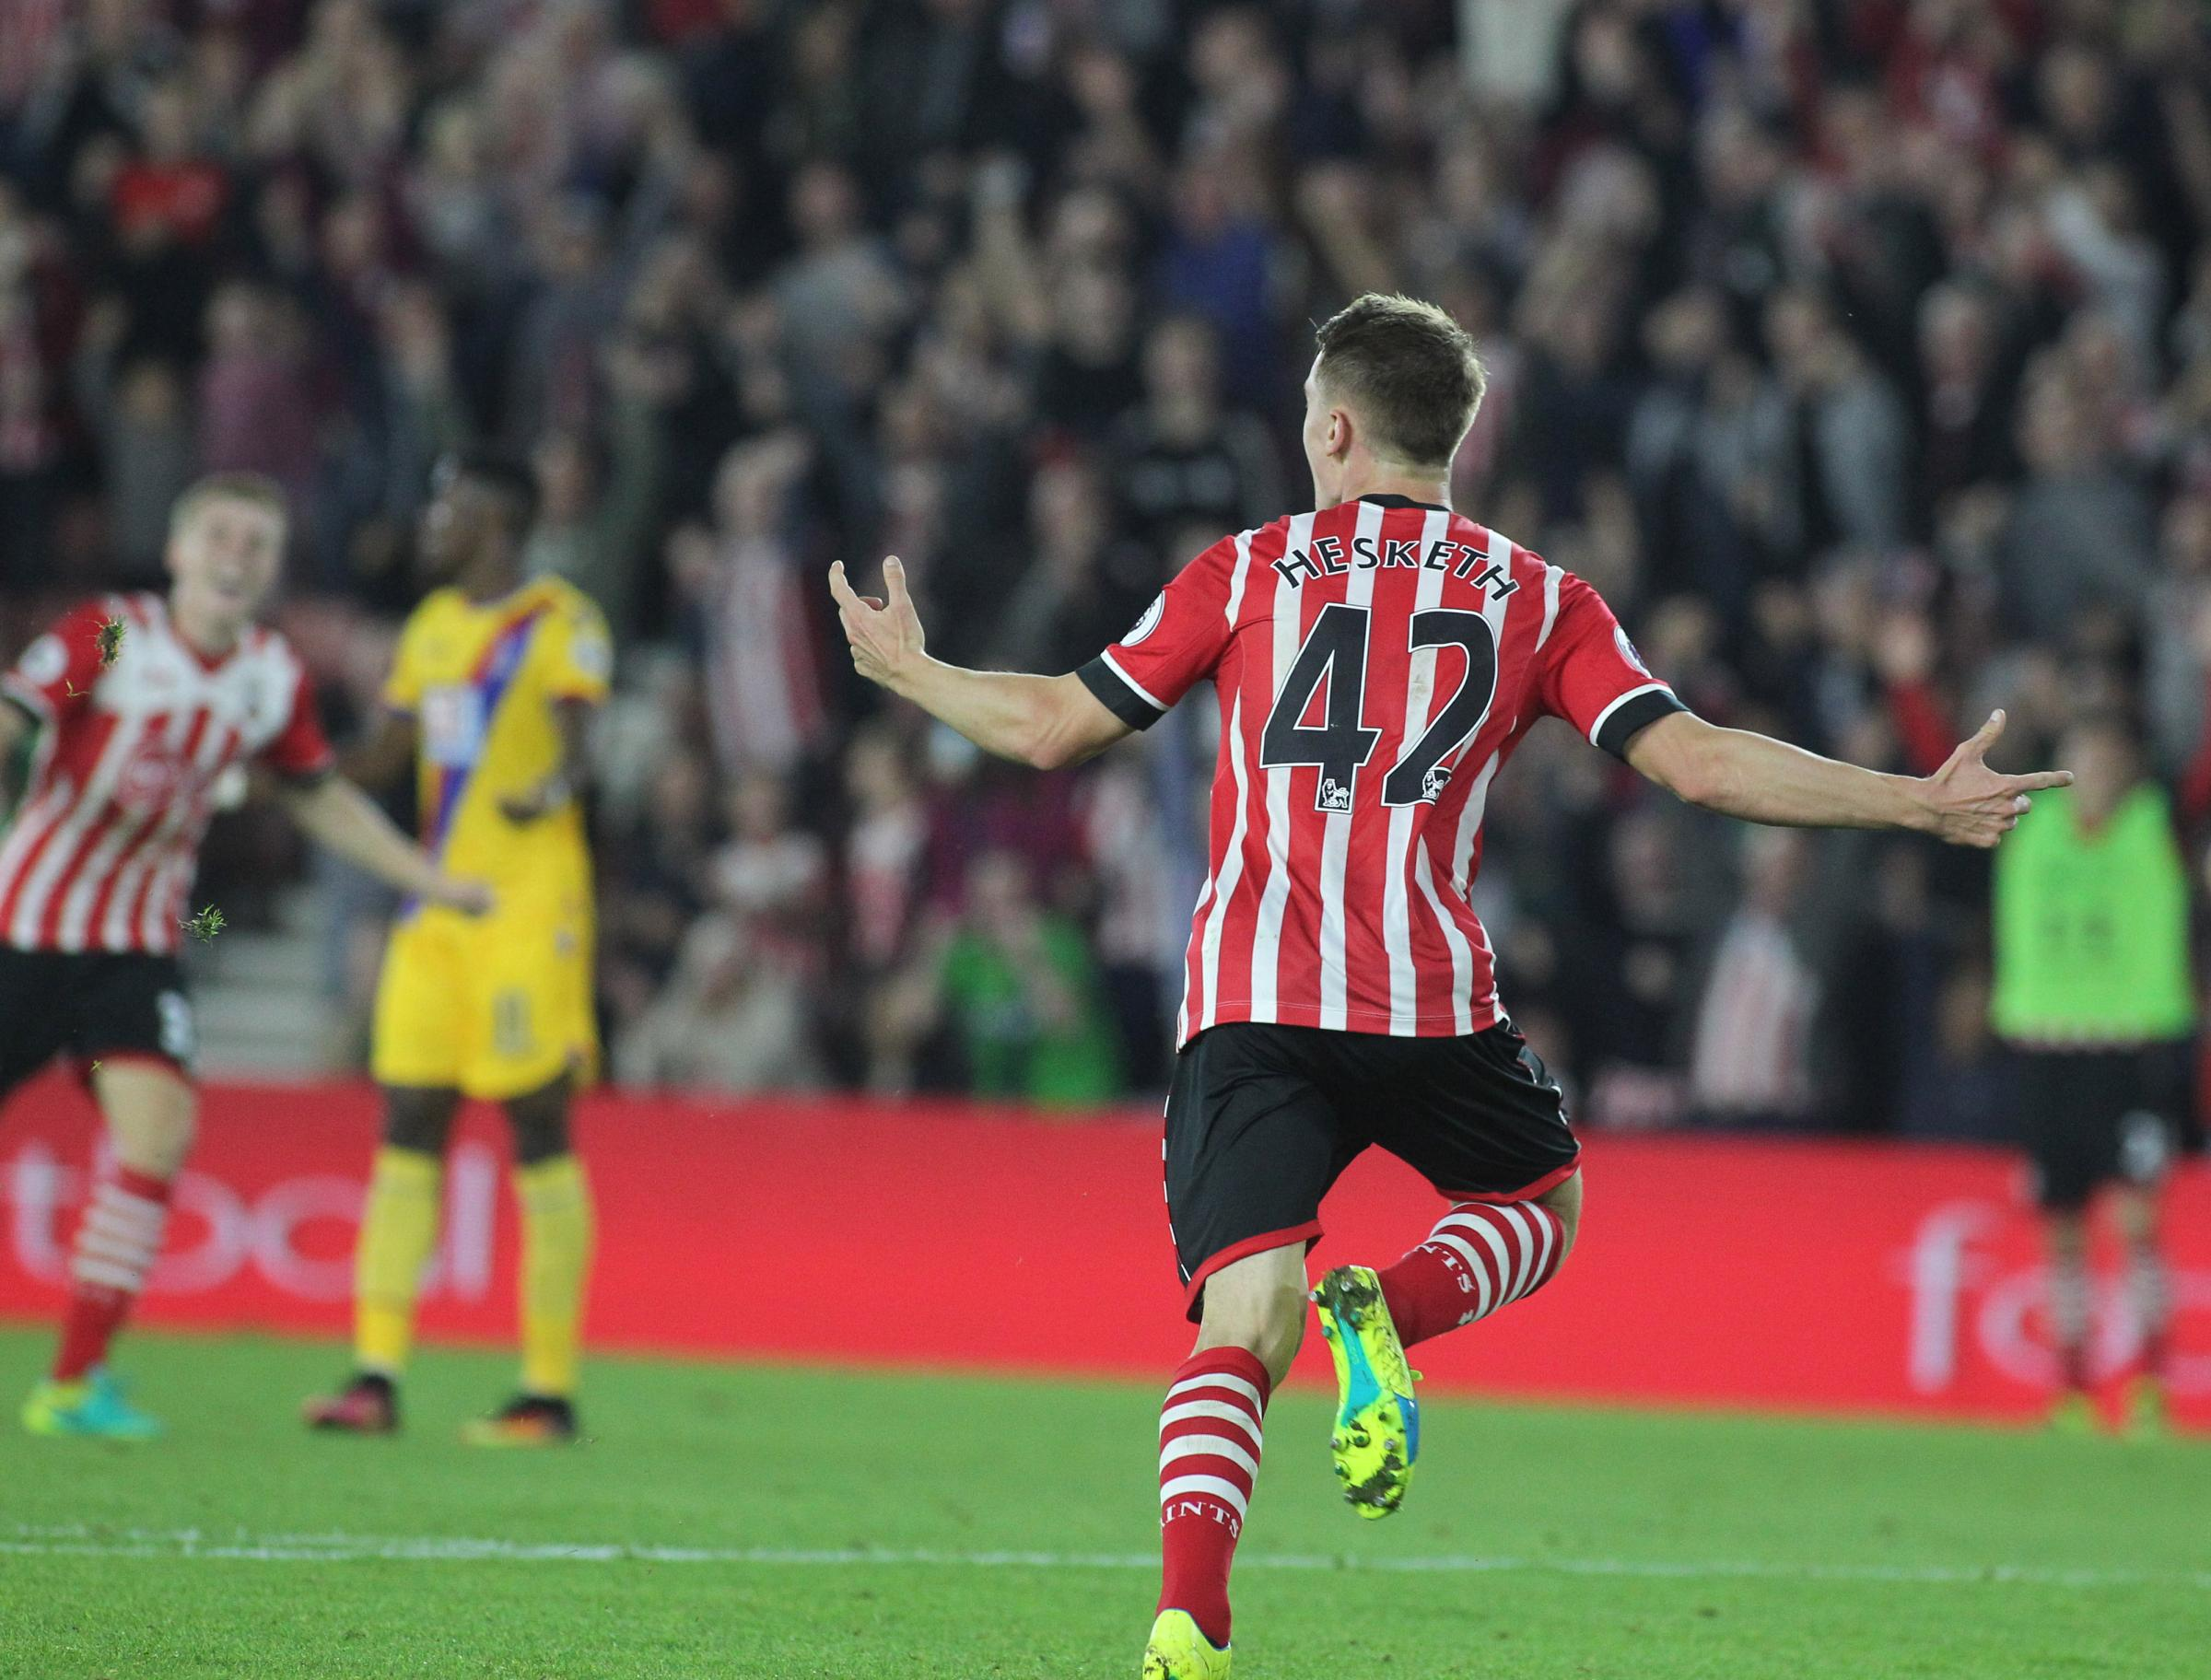 Jake Hesketh celebrates his goal for Saints